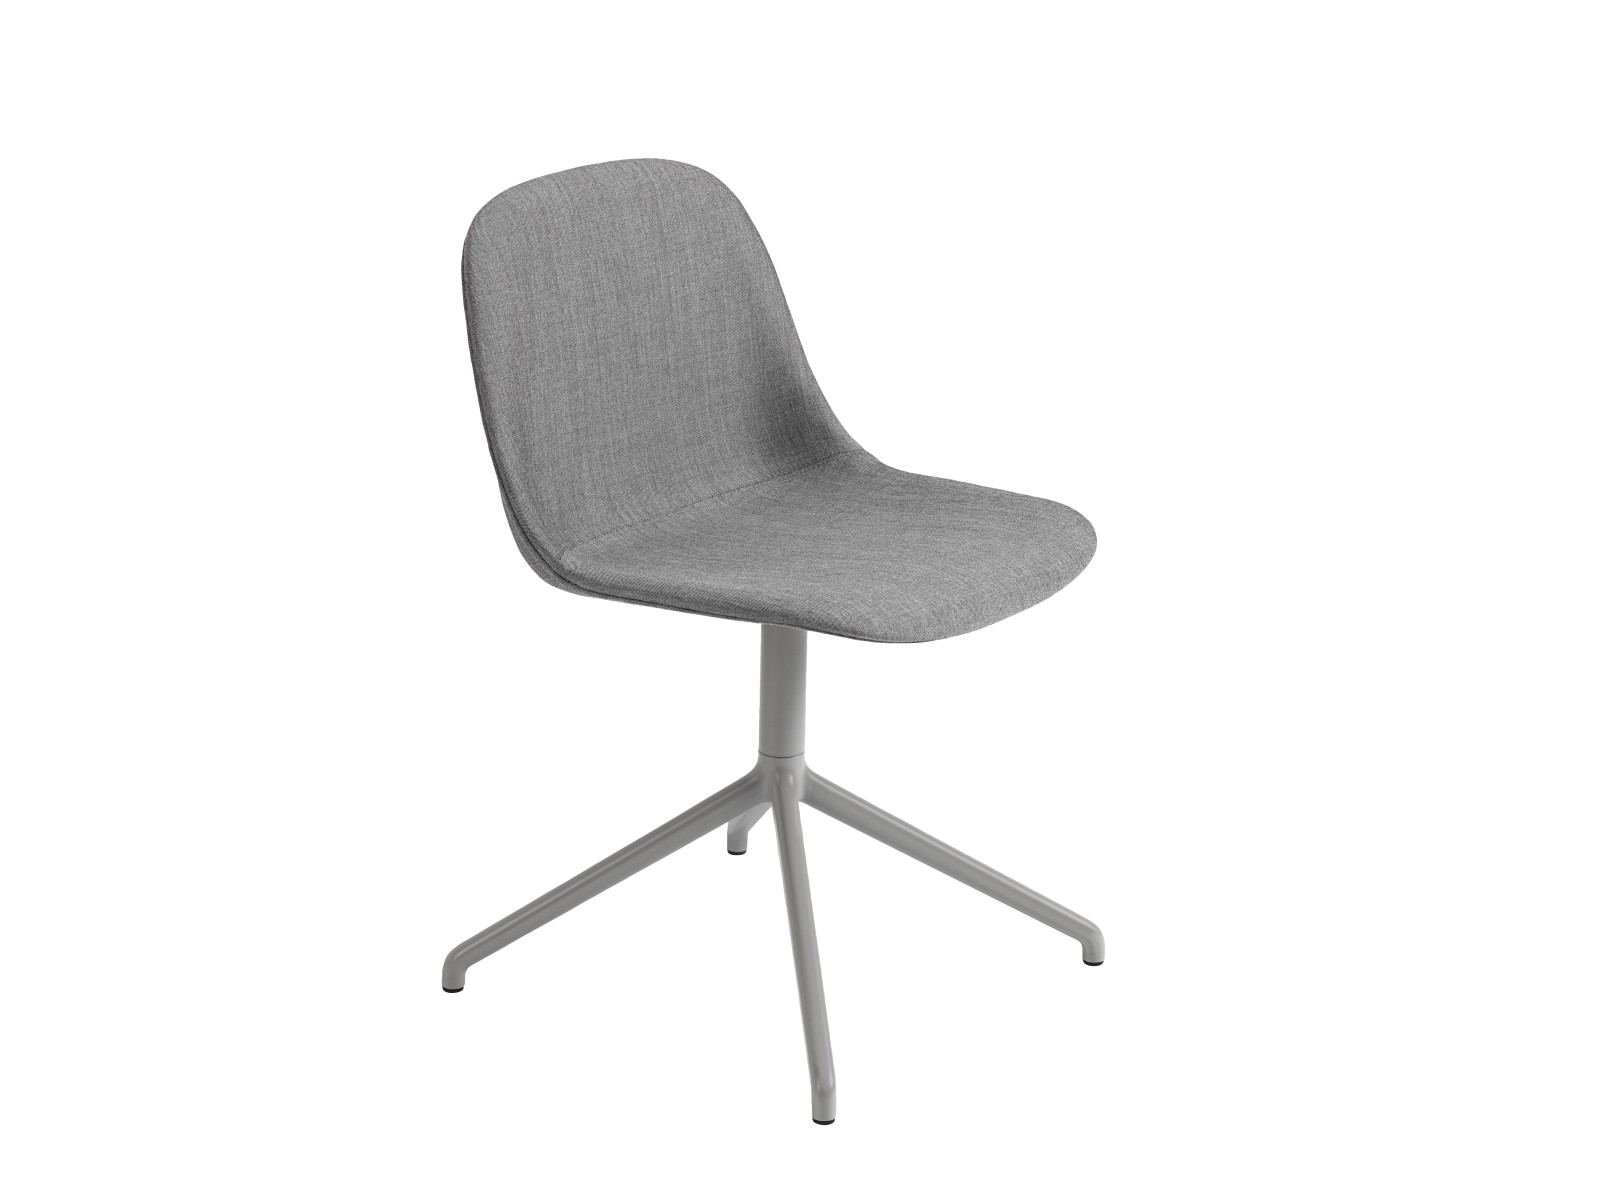 Fiber Side Swivel Chair Without Return - Upholstered Remix 133 / Grey